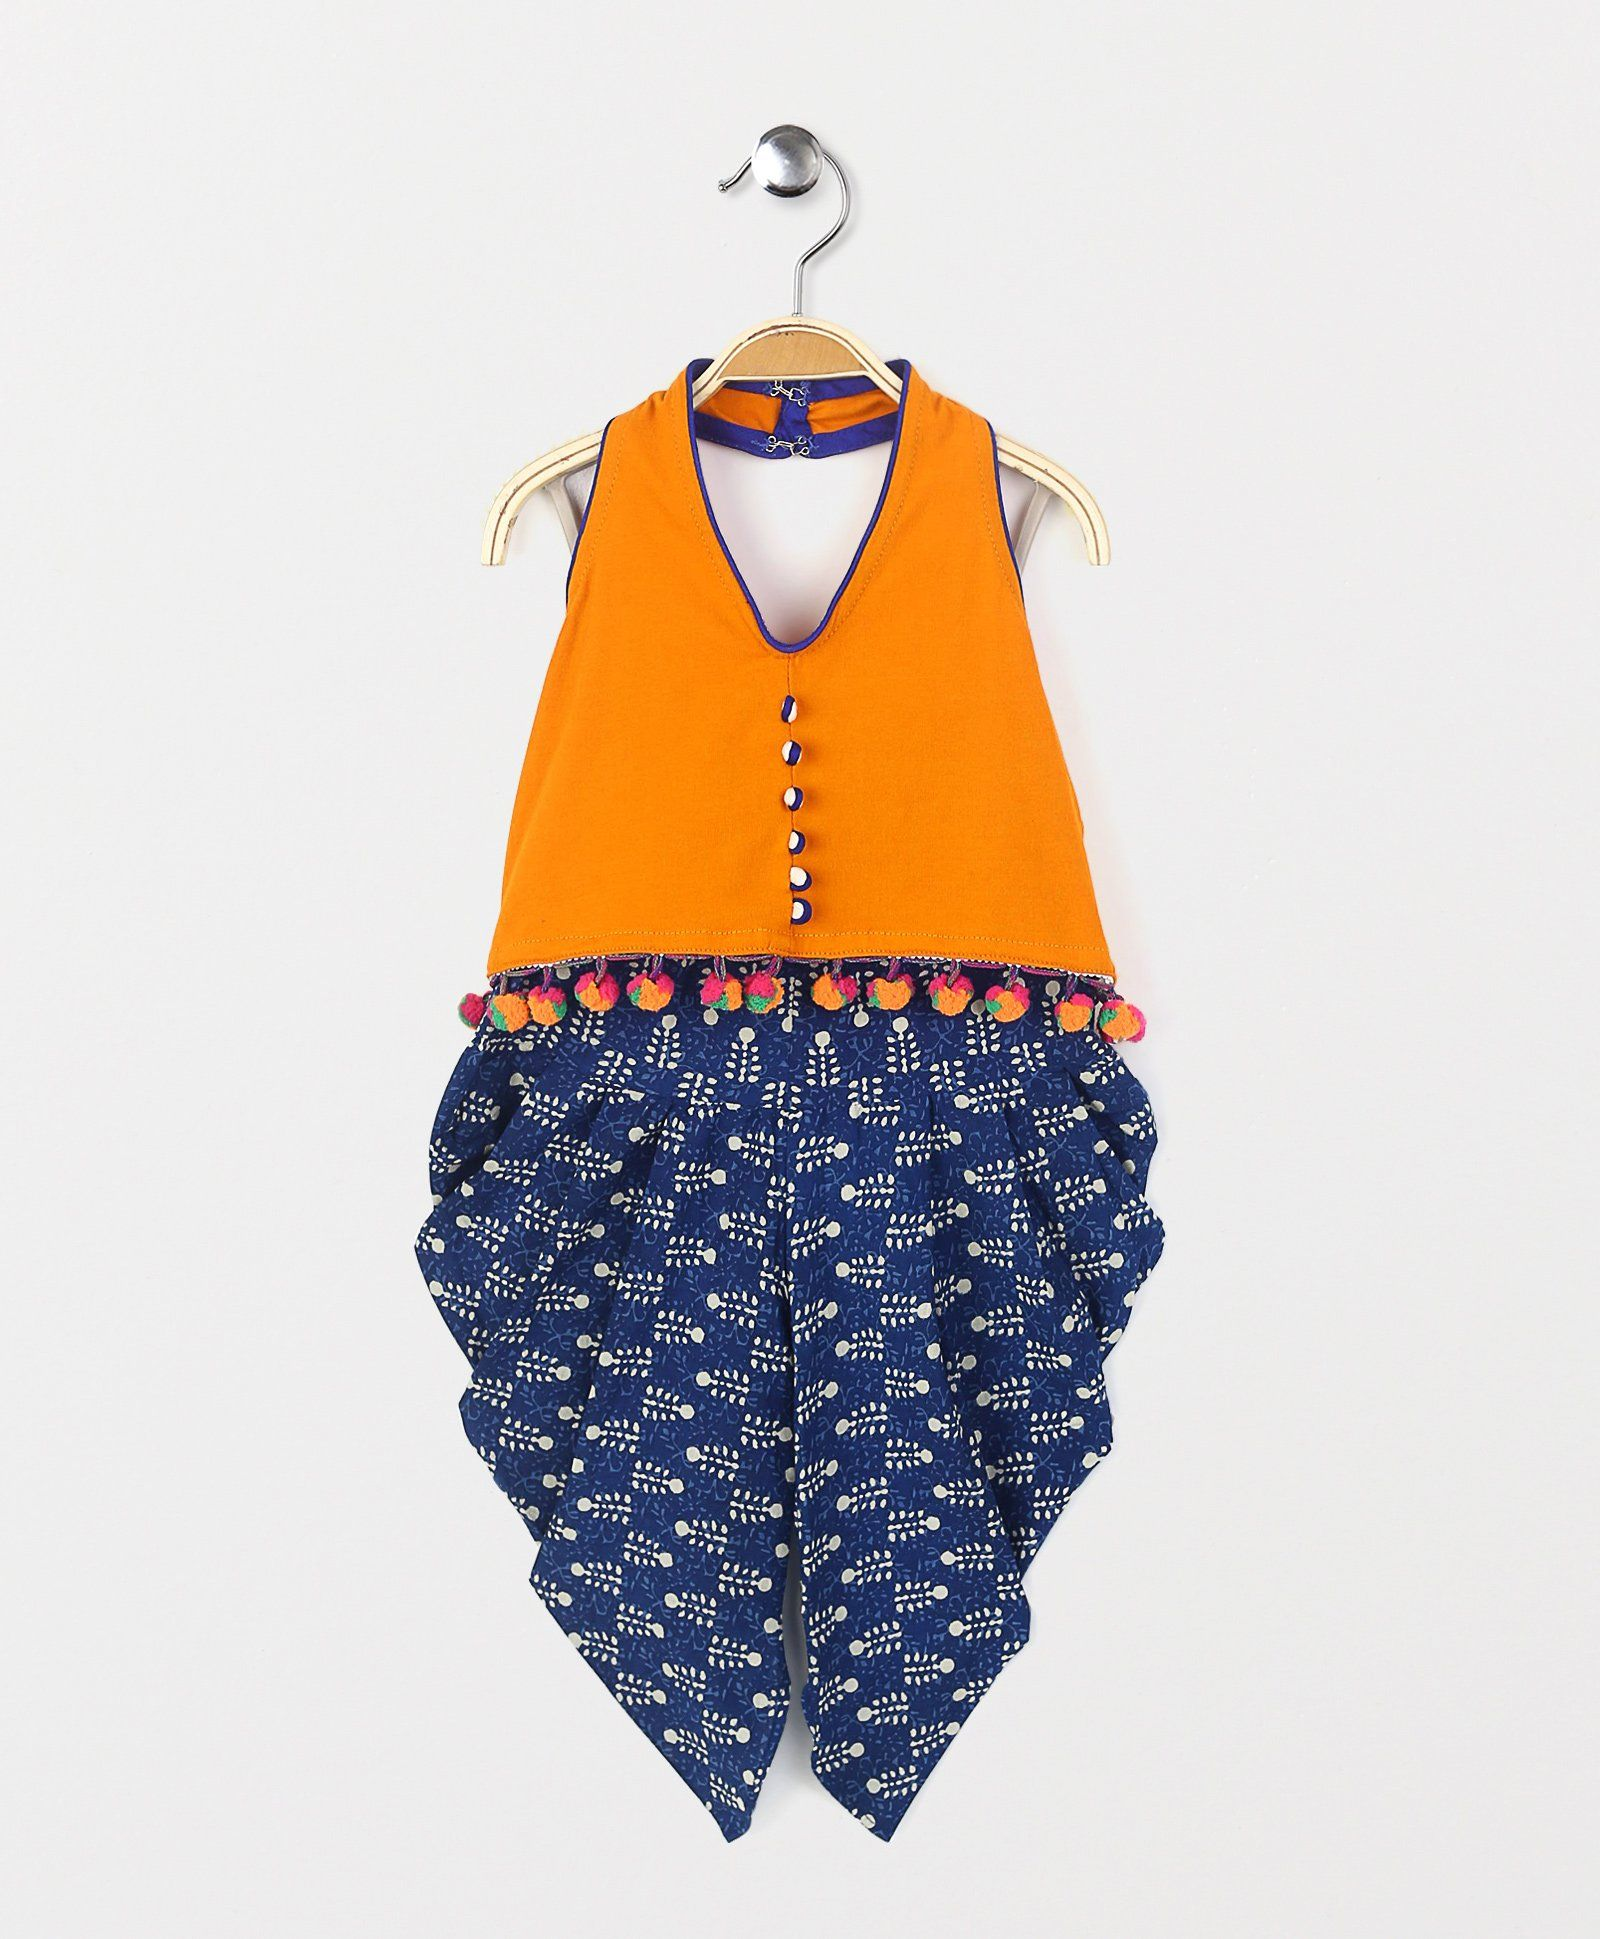 Buy Twisha Shibori Dhoti Pants With Crop Top Indigo For Girls 0 6 Months Online In India At Best Price From Kids Dresses Online Kids Dress Baby Girl Dresses